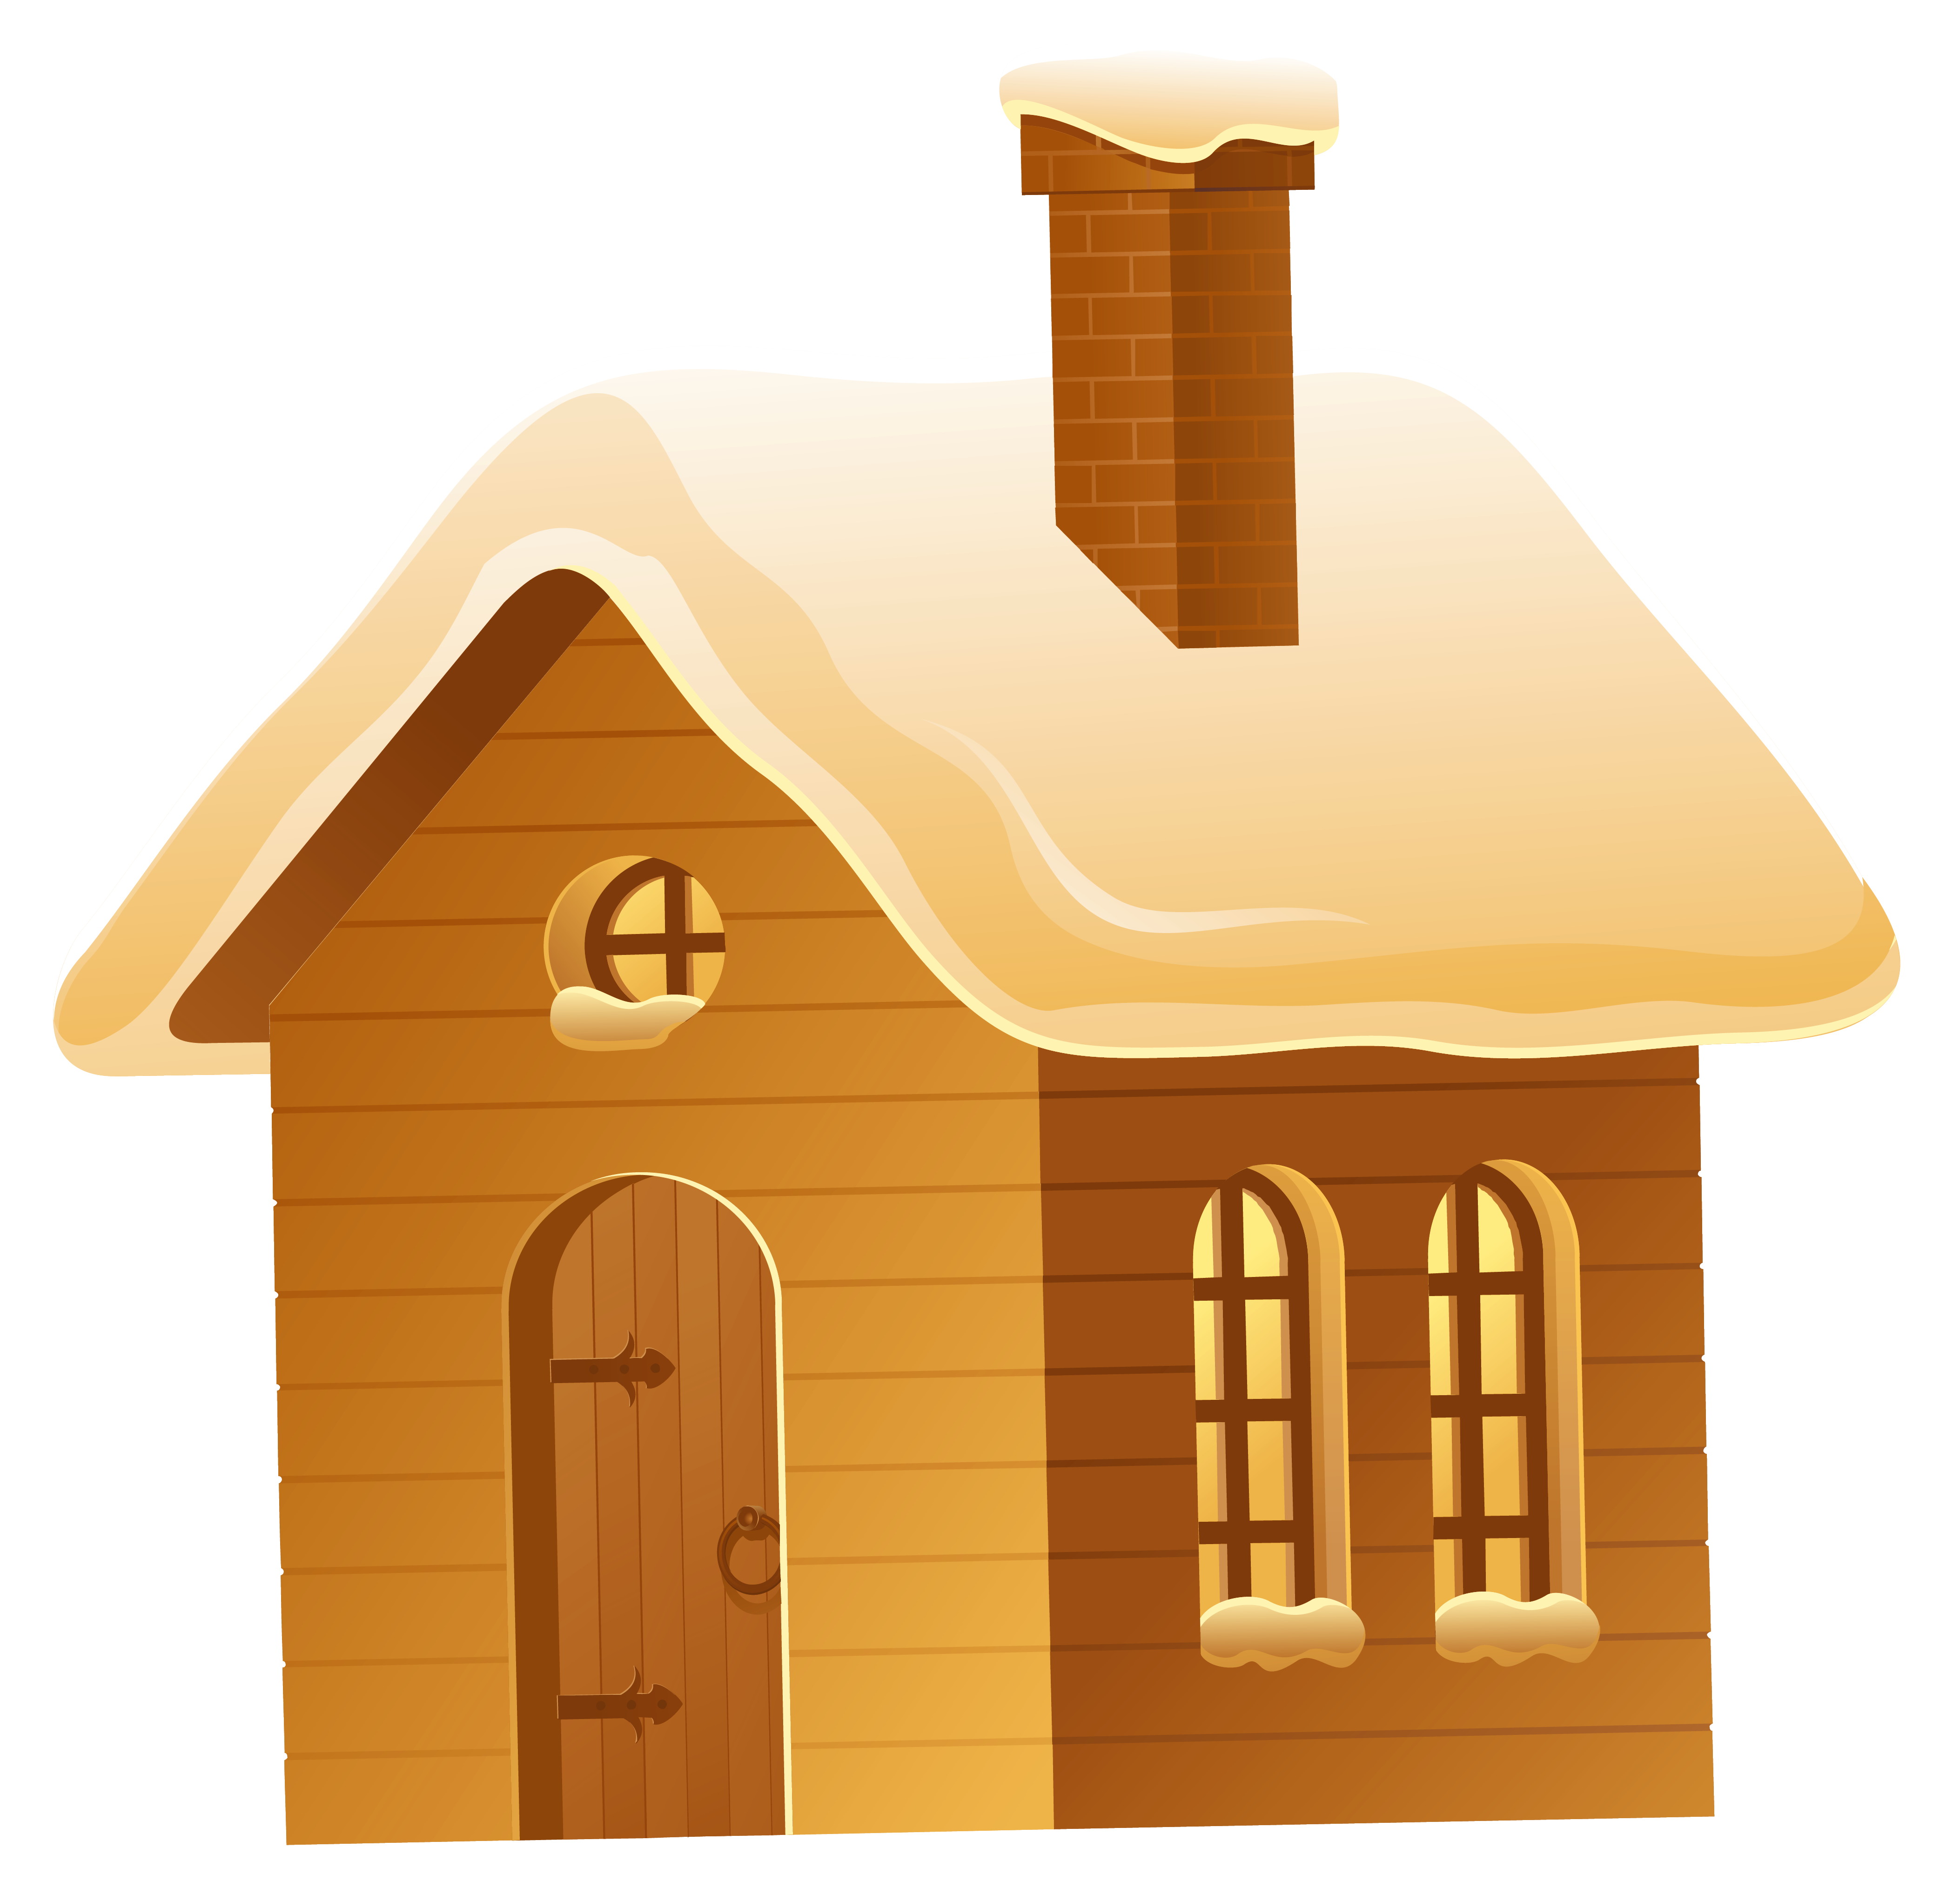 House png image. Winter brown picture gallery